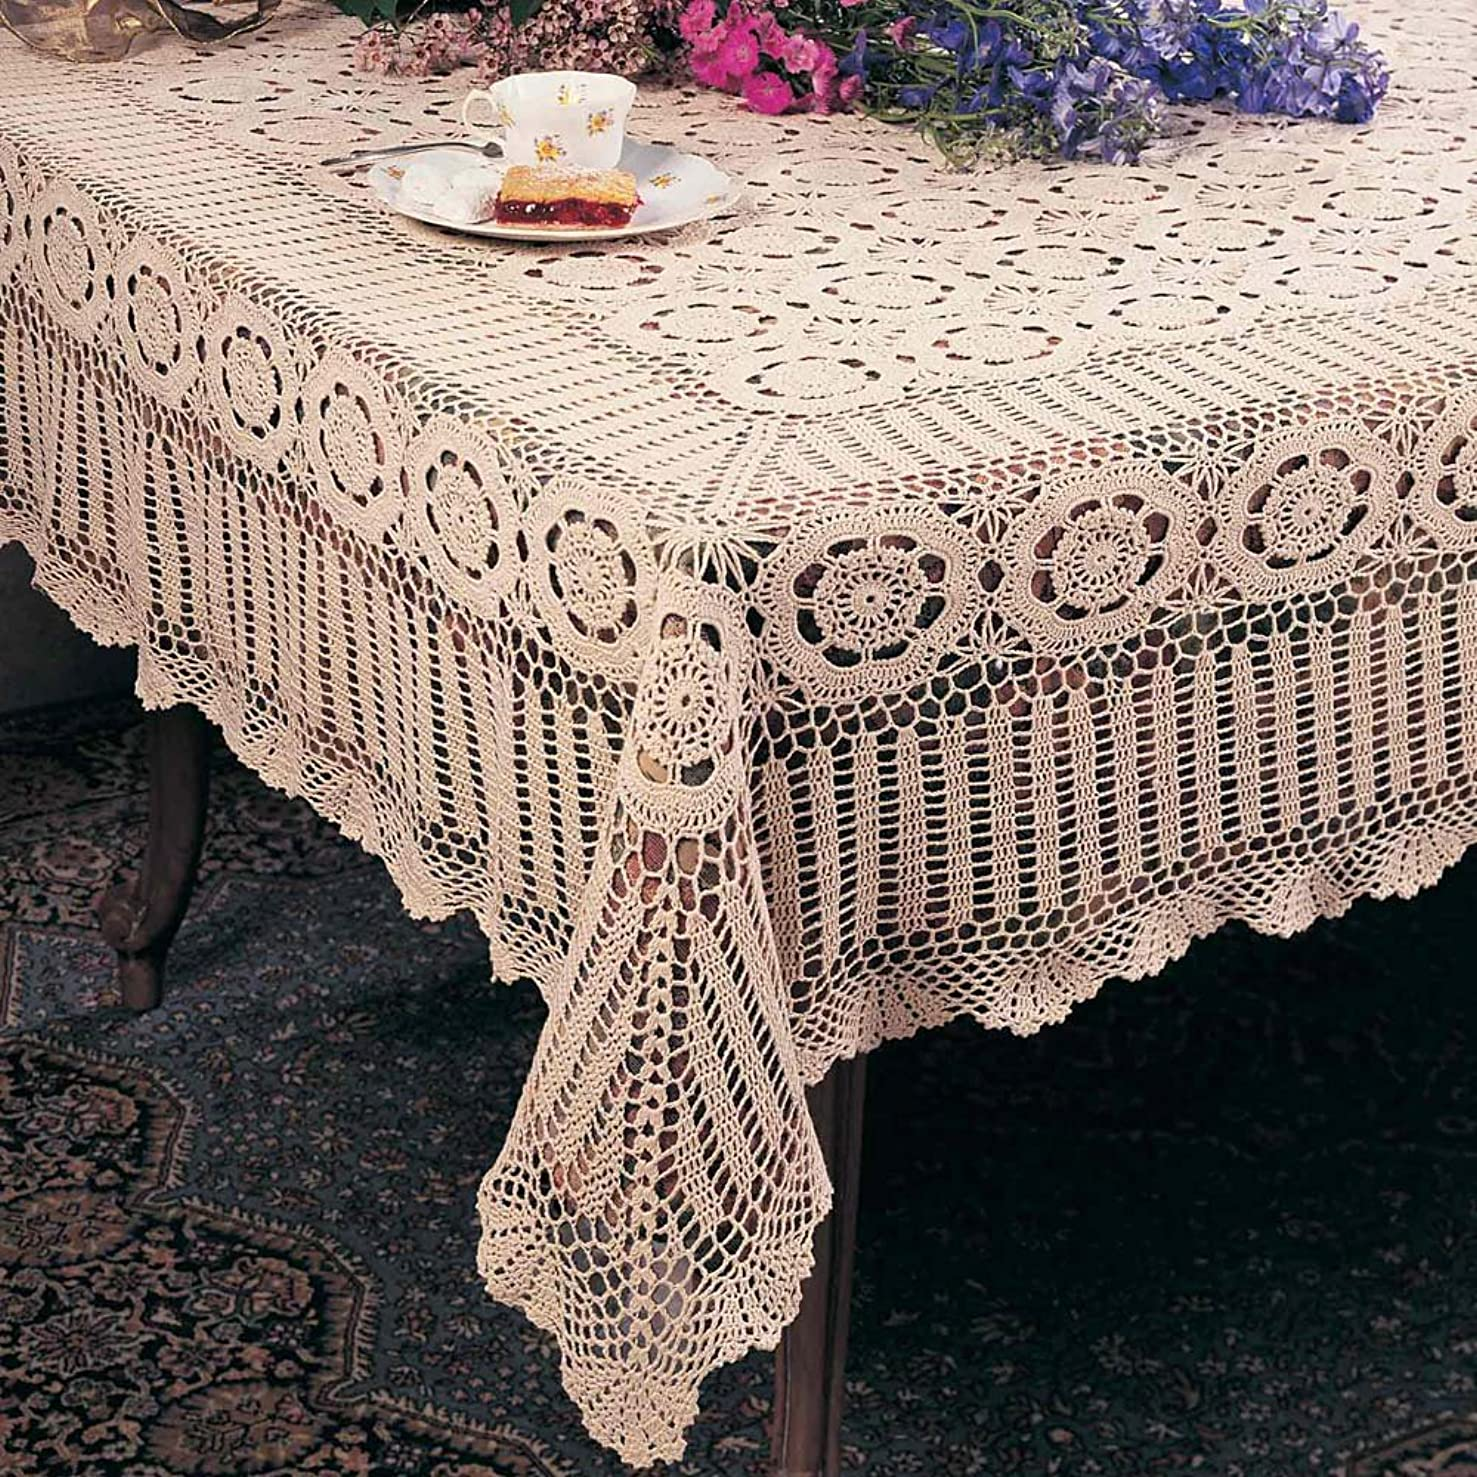 TCC Handmade Crochet Lace Tablecloth. 100% Cotton Crochet. Ecru, 72 Inch X108 Inch Oblong. One piece